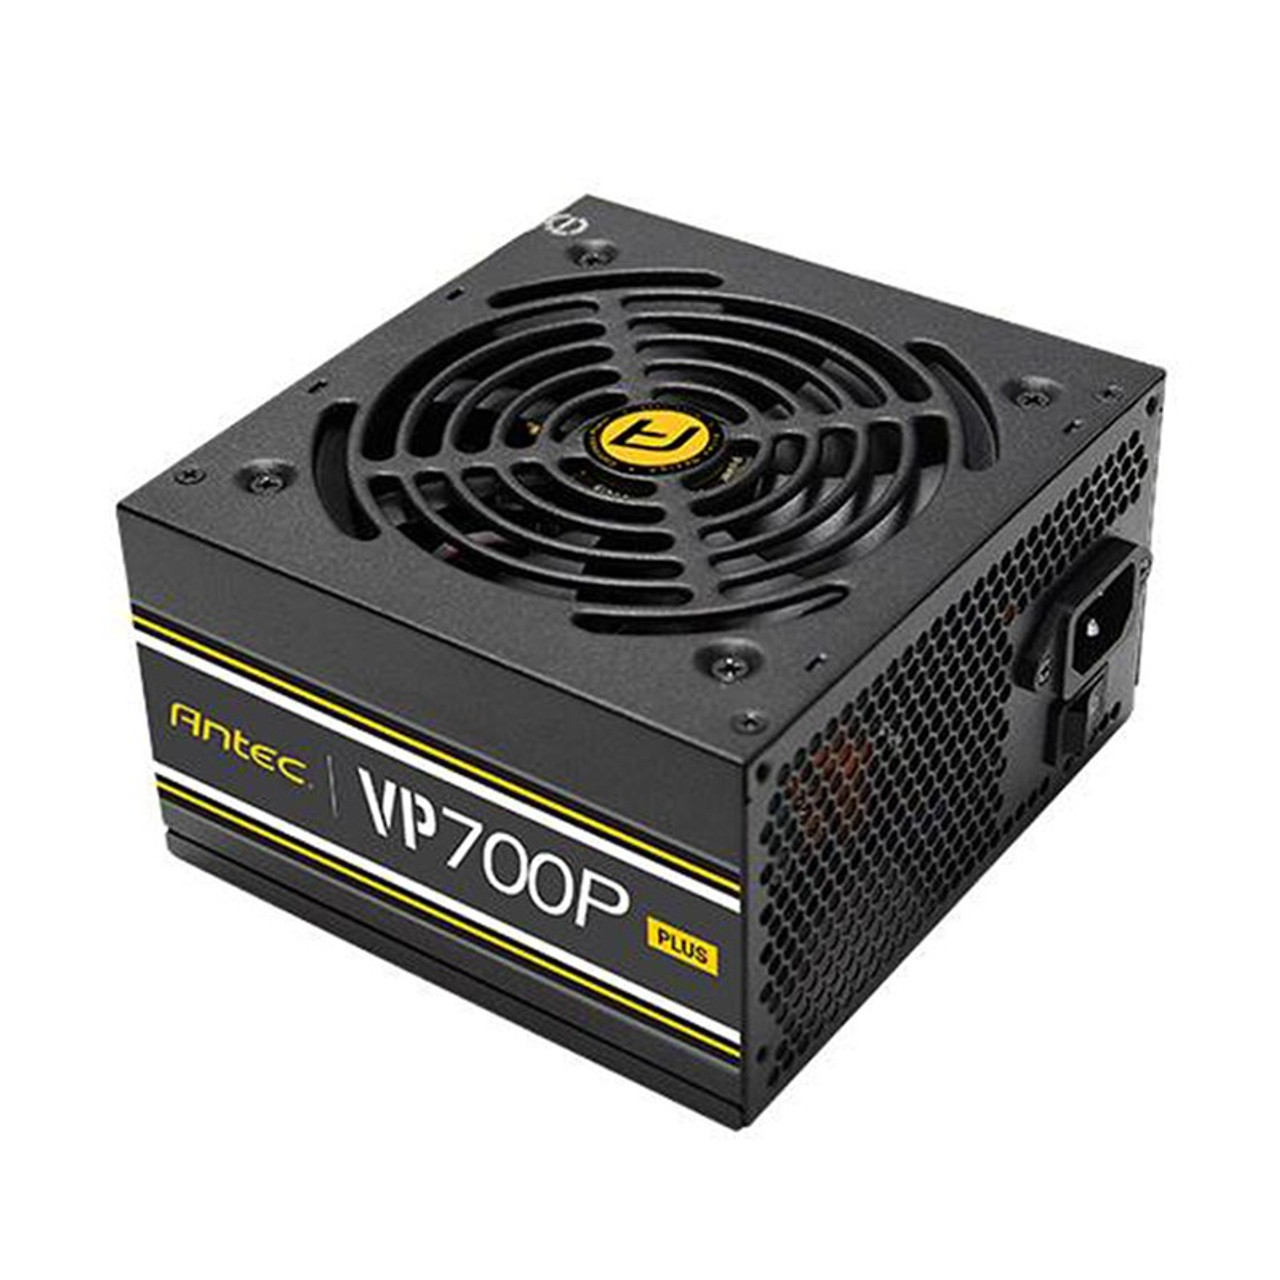 Image for Antec VP700P PLUS 700W 80+ Non-Modular Power Supply CX Computer Superstore